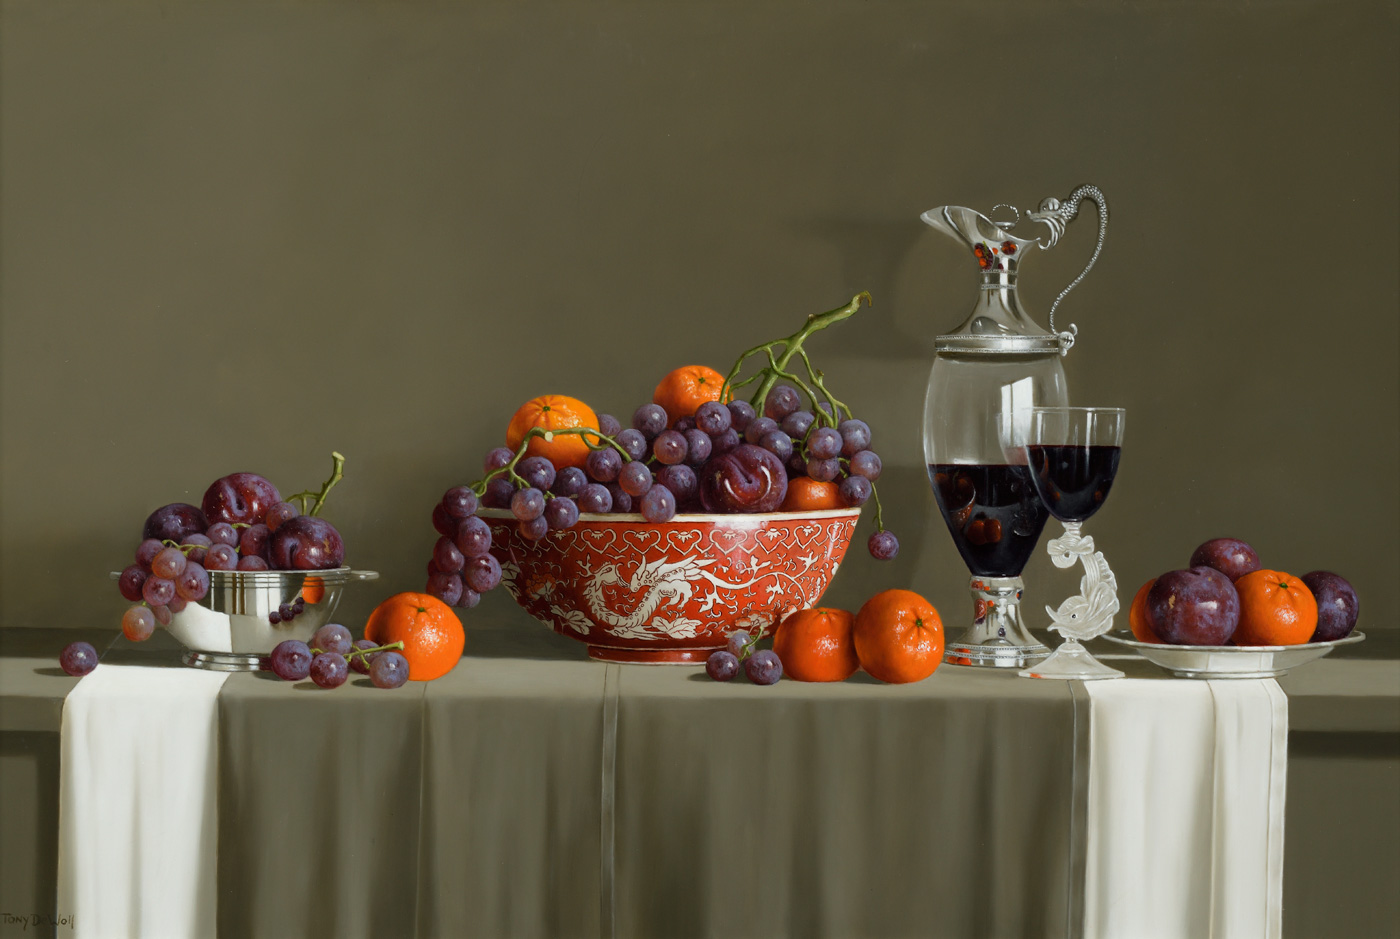 Asian Bowl, Fruit and Grapes by  Tony de Wolf